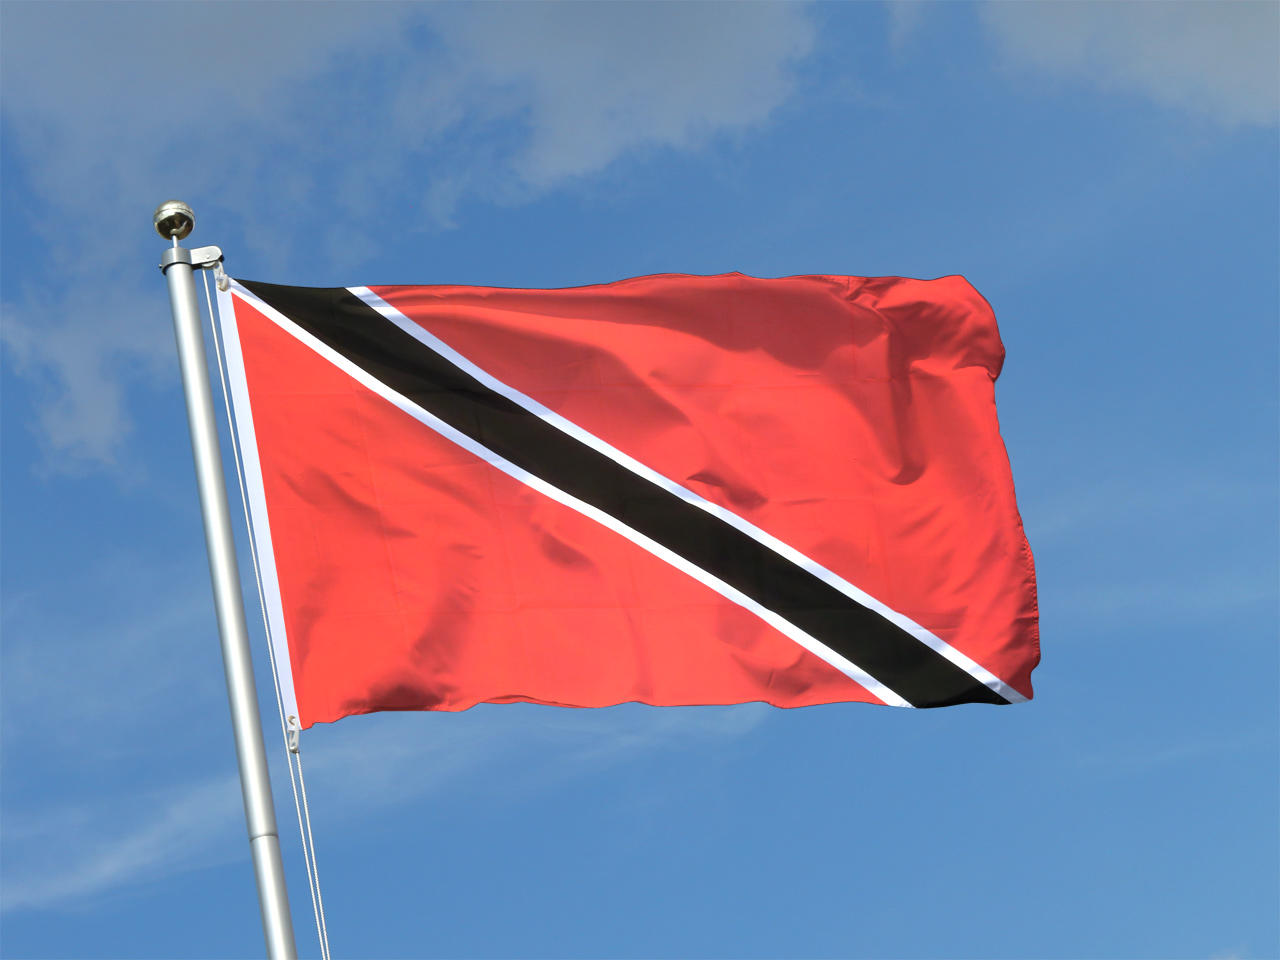 is trinidad and tobago a nation The words of the national anthem reflect the nature and the strength of the people of trinidad and tobago our courage as one nation working towards living in unity despite our diversity.